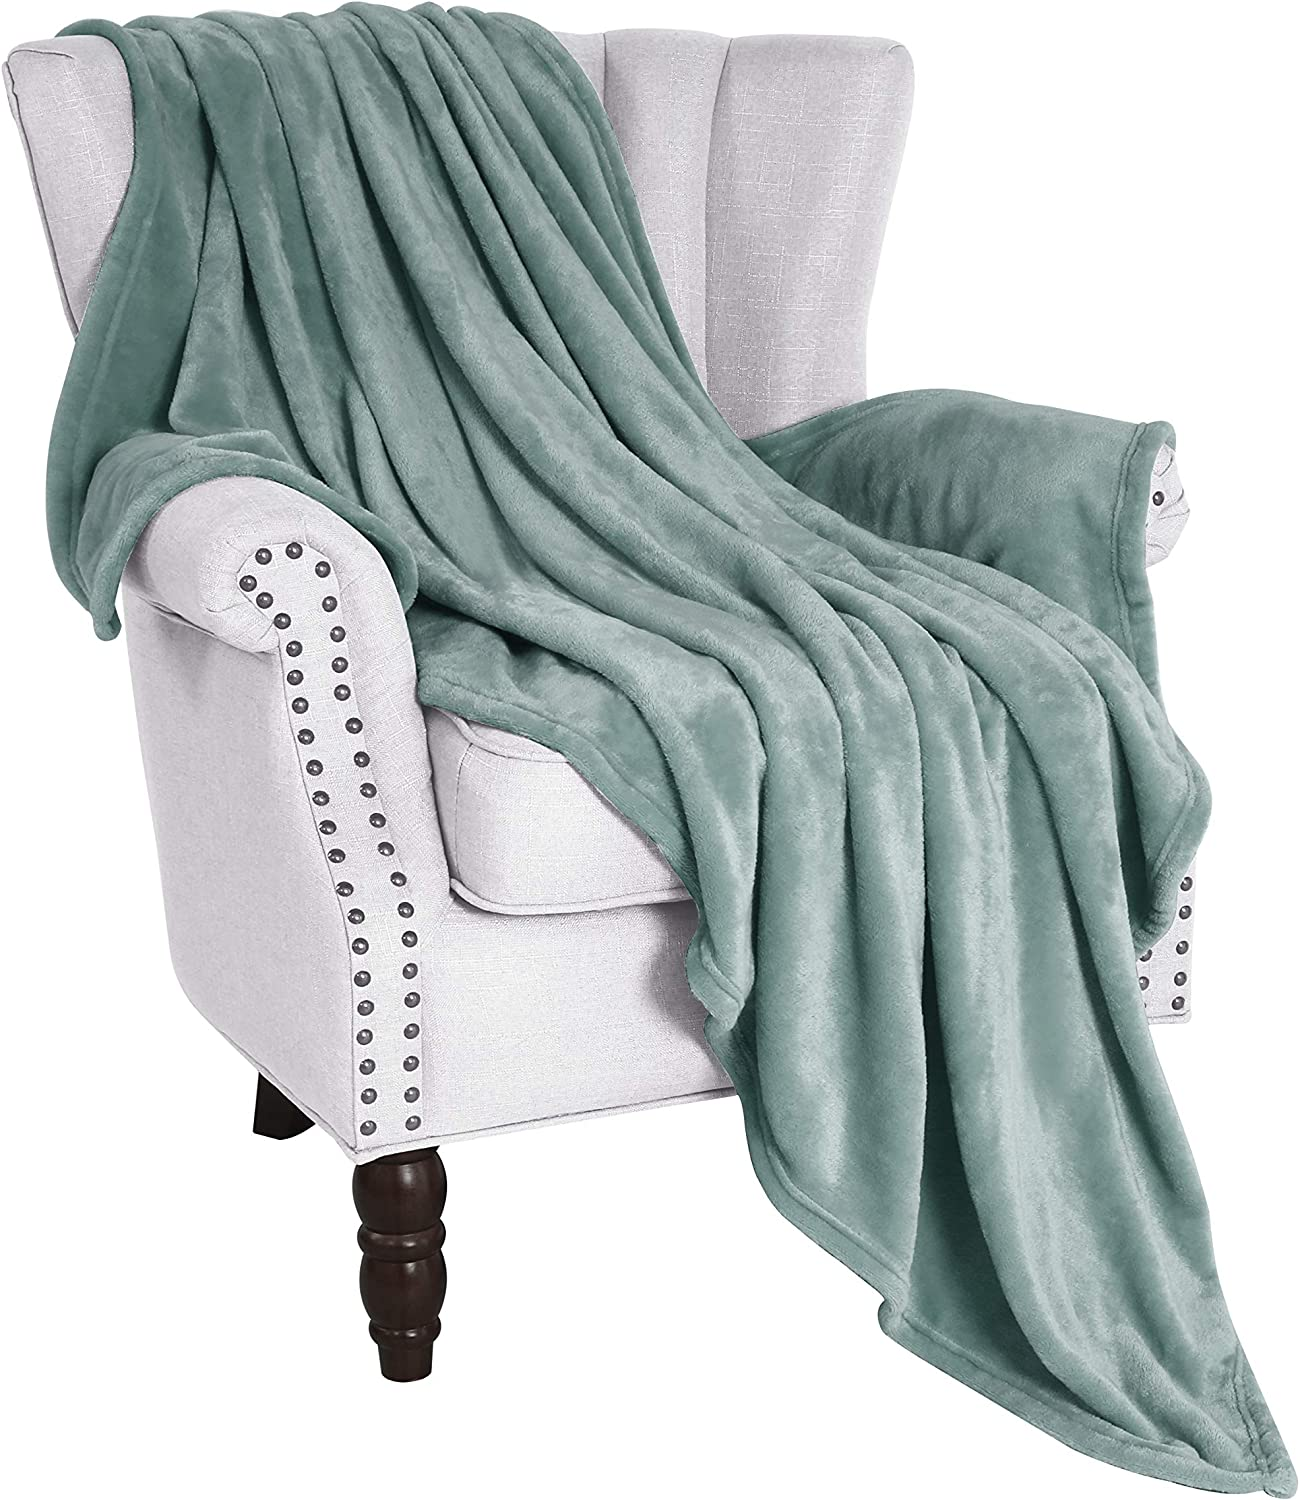 "Exclusivo Mezcla Flannel Fleece Velvet Plush Soft Throw Blanket – 50"" x 60"" (Celadon)"